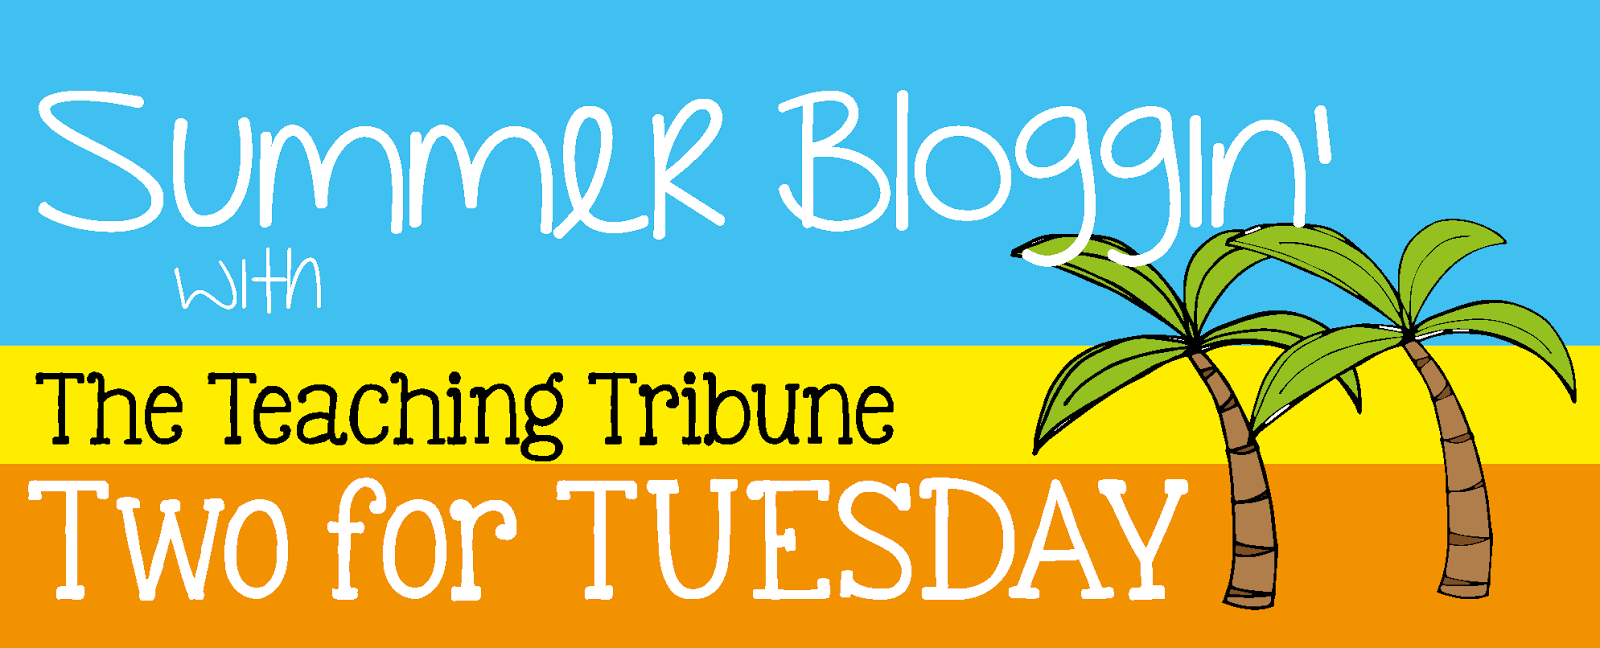 http://www.theteachingtribune.com/2014/06/two-for-tuesday.html